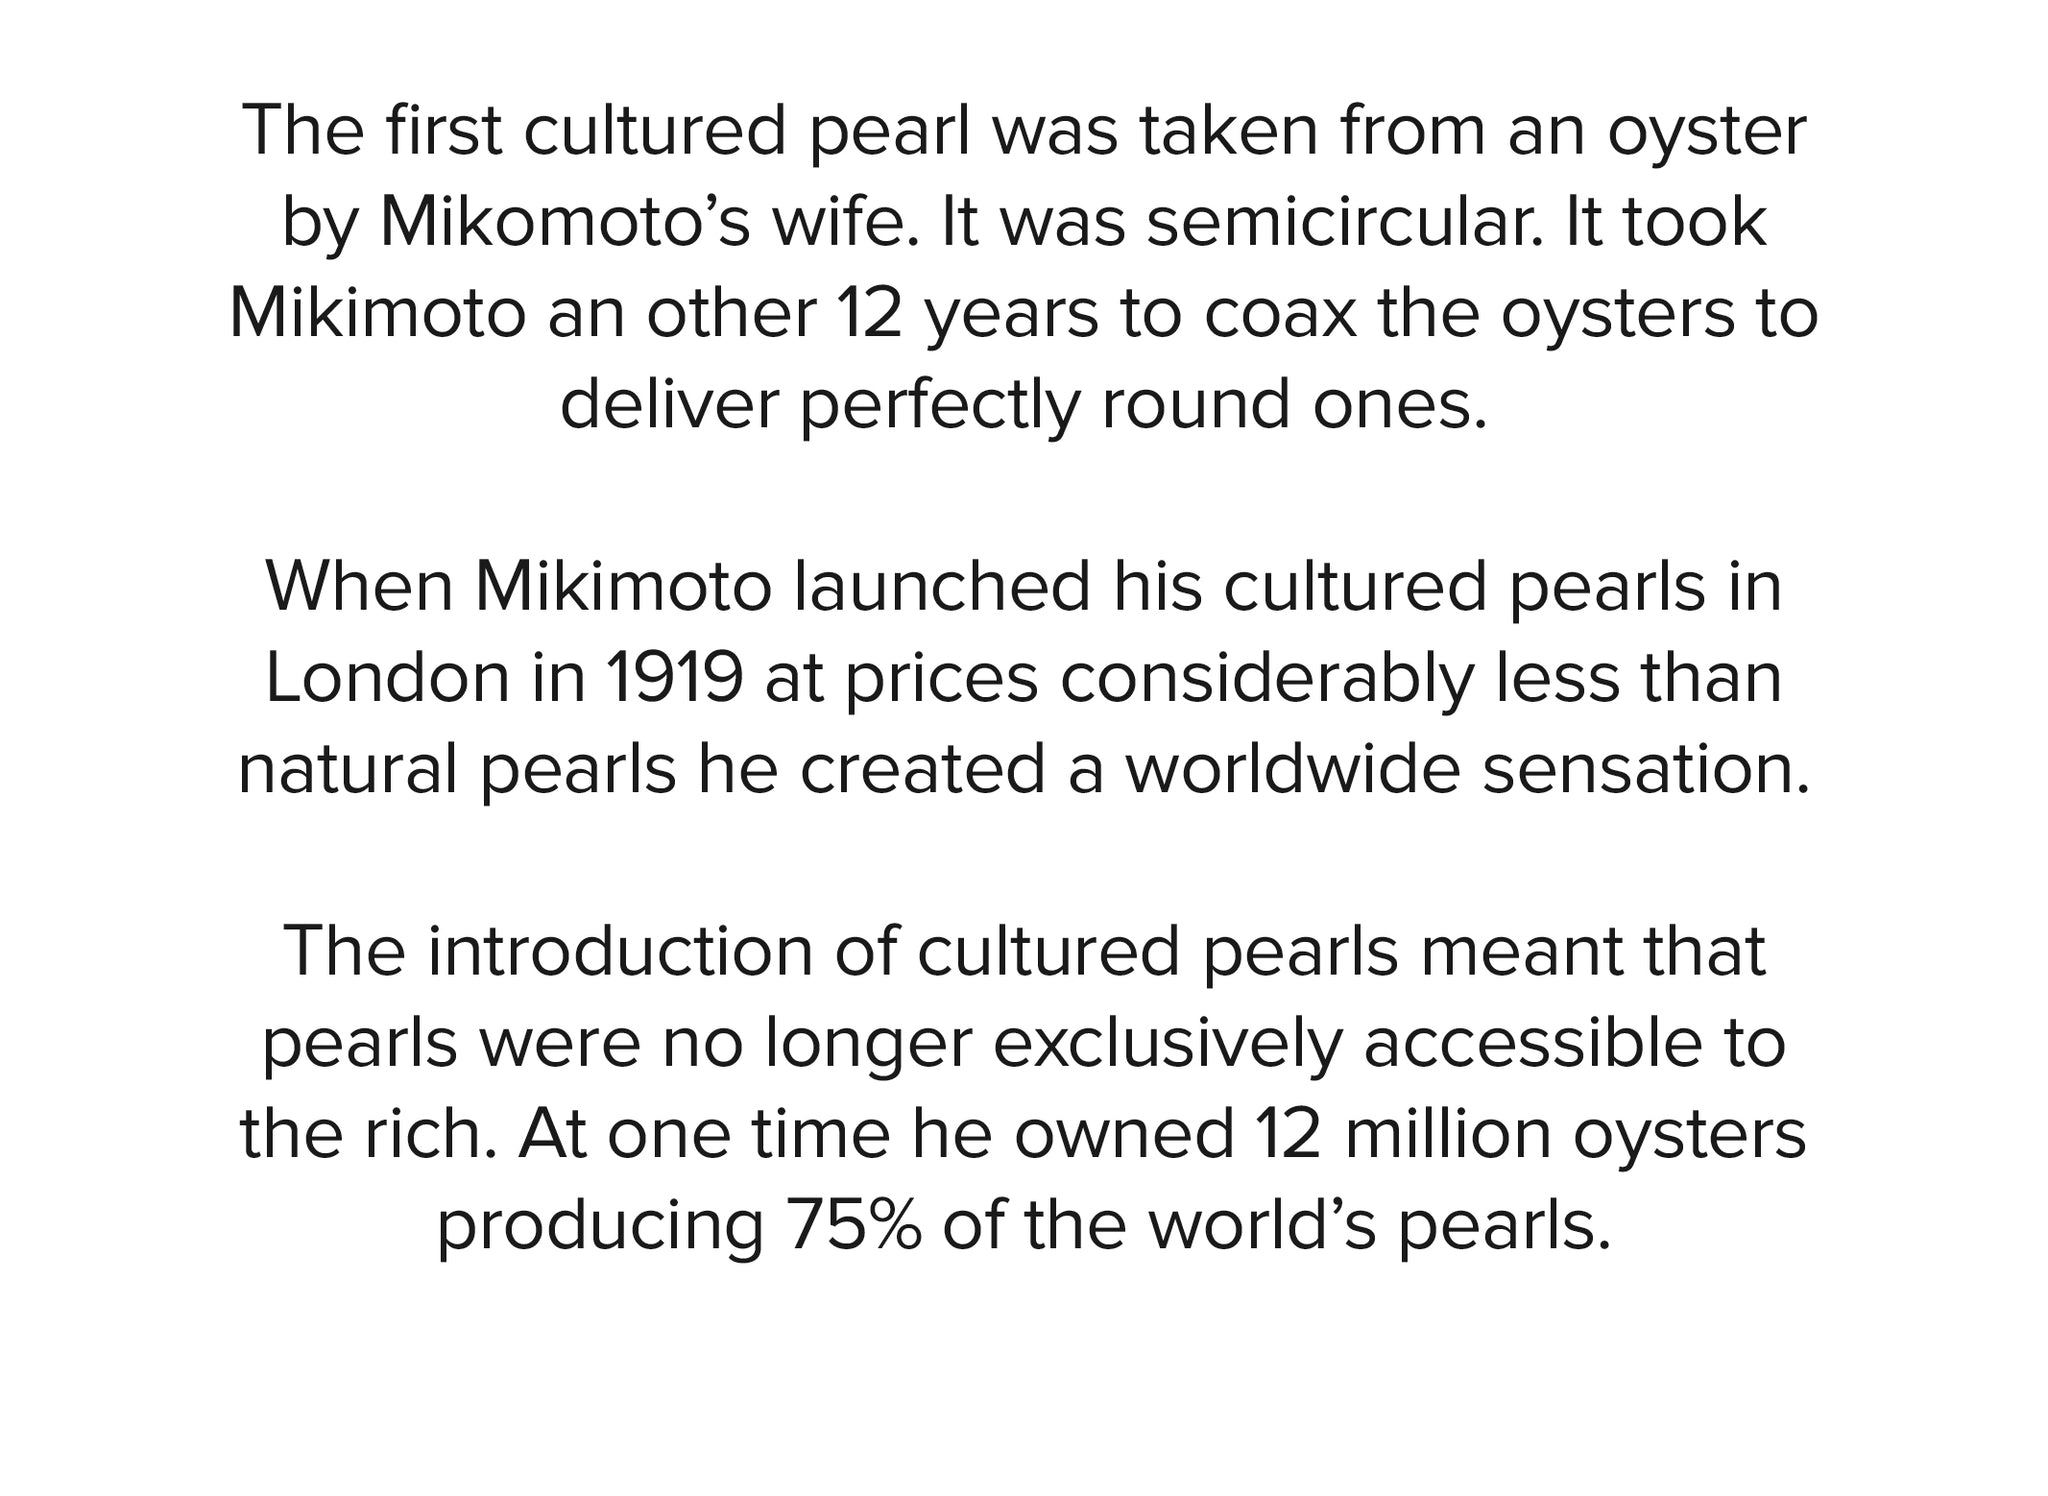 The first cultured pearl was taken from an oyster by Mikomoto's wife. It was semicircular. It took Mikimoto an other 12 years to coax the oysters to deliver perfectly round ones.   When Mikimoto launched his cultured pearls in London in 1919 at prices considerably less than natural pearls he created a worldwide sensation.   The introduction of cultured pearls meant that pearls were no longer exclusively accessible to the rich. At one time he owned 12 million oysters producing 75% of the world's pearls.